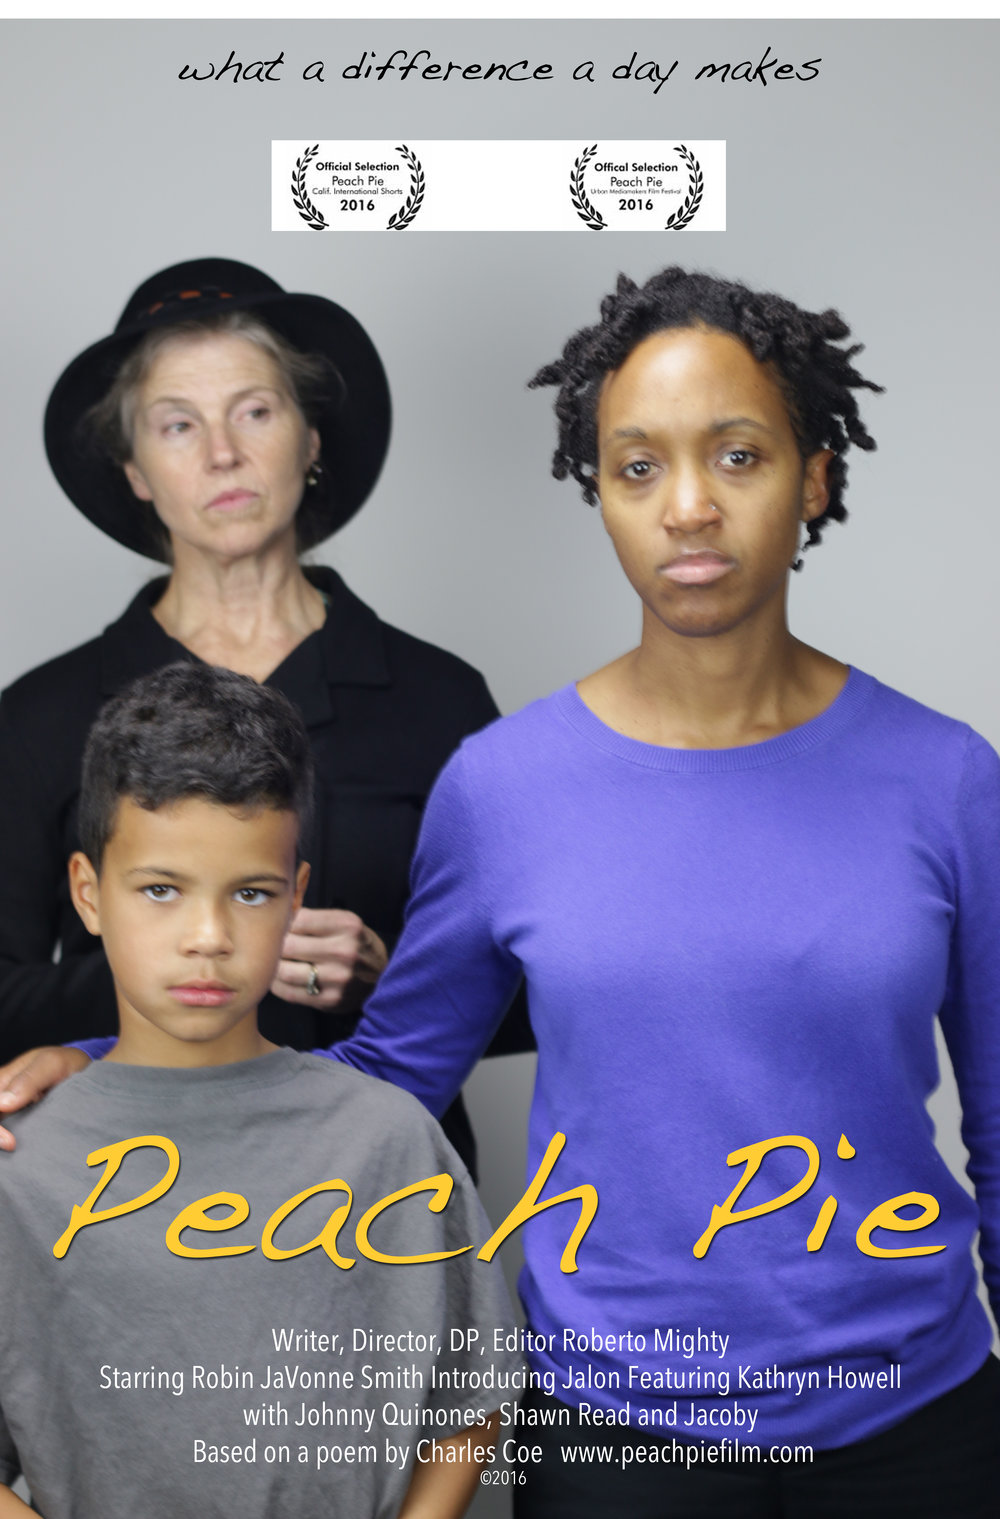 Peach Pie, an original film written and directed by Roberto Mighty, was filmed almost entirely at Celestial Media Studios in Boston. Several different sets were designed for the production, including two different kitchens; a little boys' room; a soldier family's living room; and a dining room. Peach Pie debuted at the California International Shorts Festival in North Hollywood, California, and the Urban Mediamakers Film Festival in Atlanta, Georgia. More info.